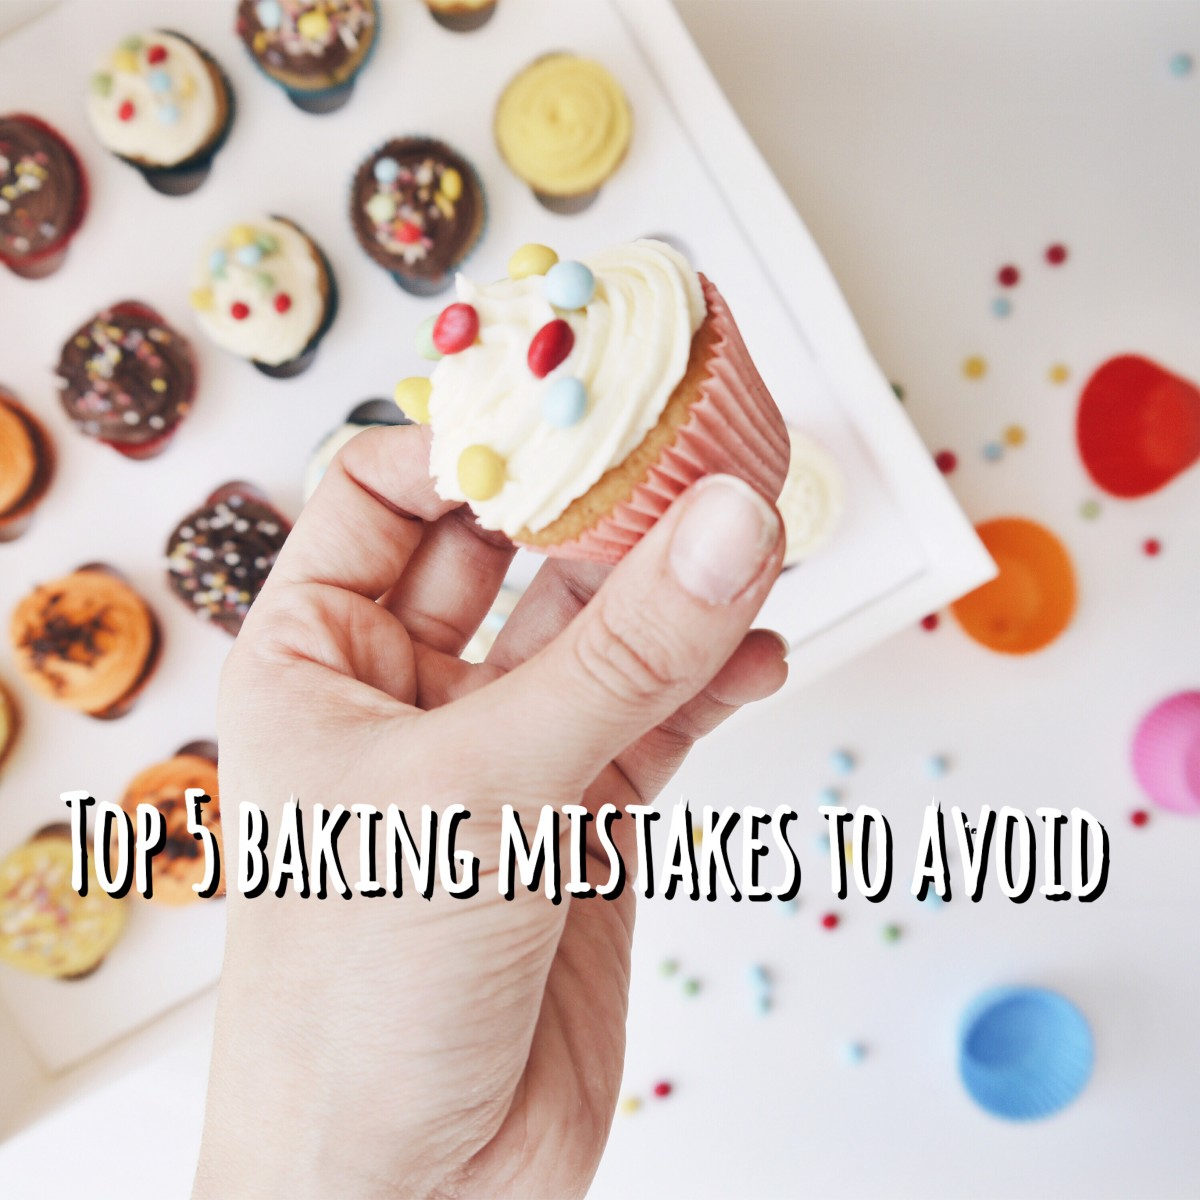 TOP 5 BAKING MISTAKES